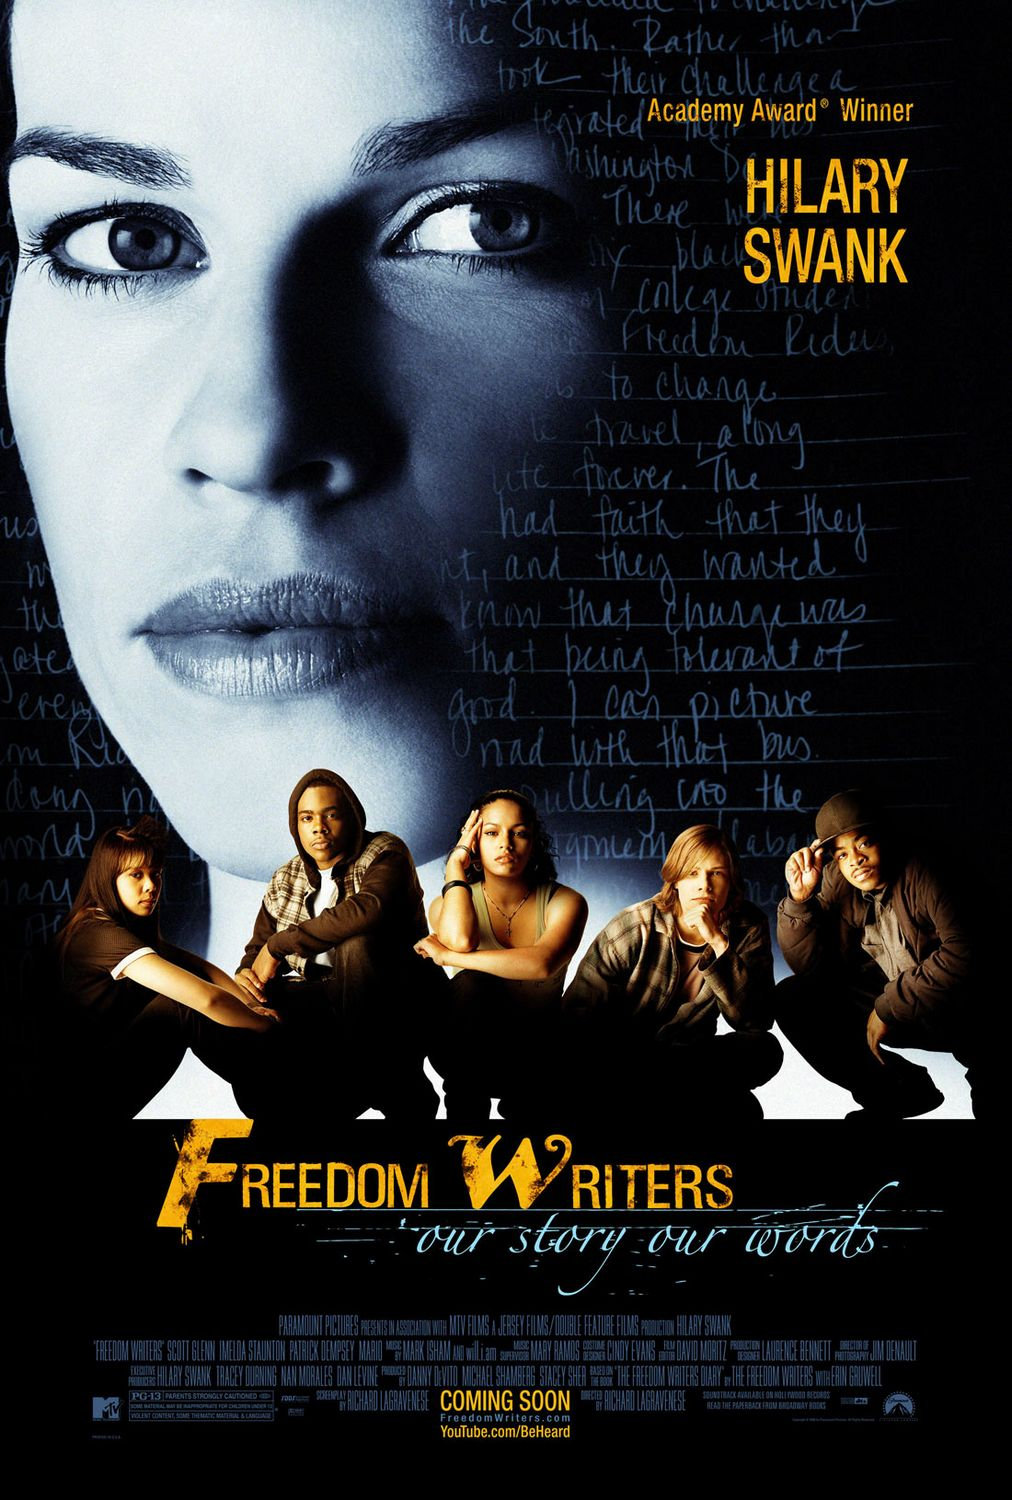 https://i0.wp.com/www.impawards.com/2007/posters/freedom_writers_xlg.jpg